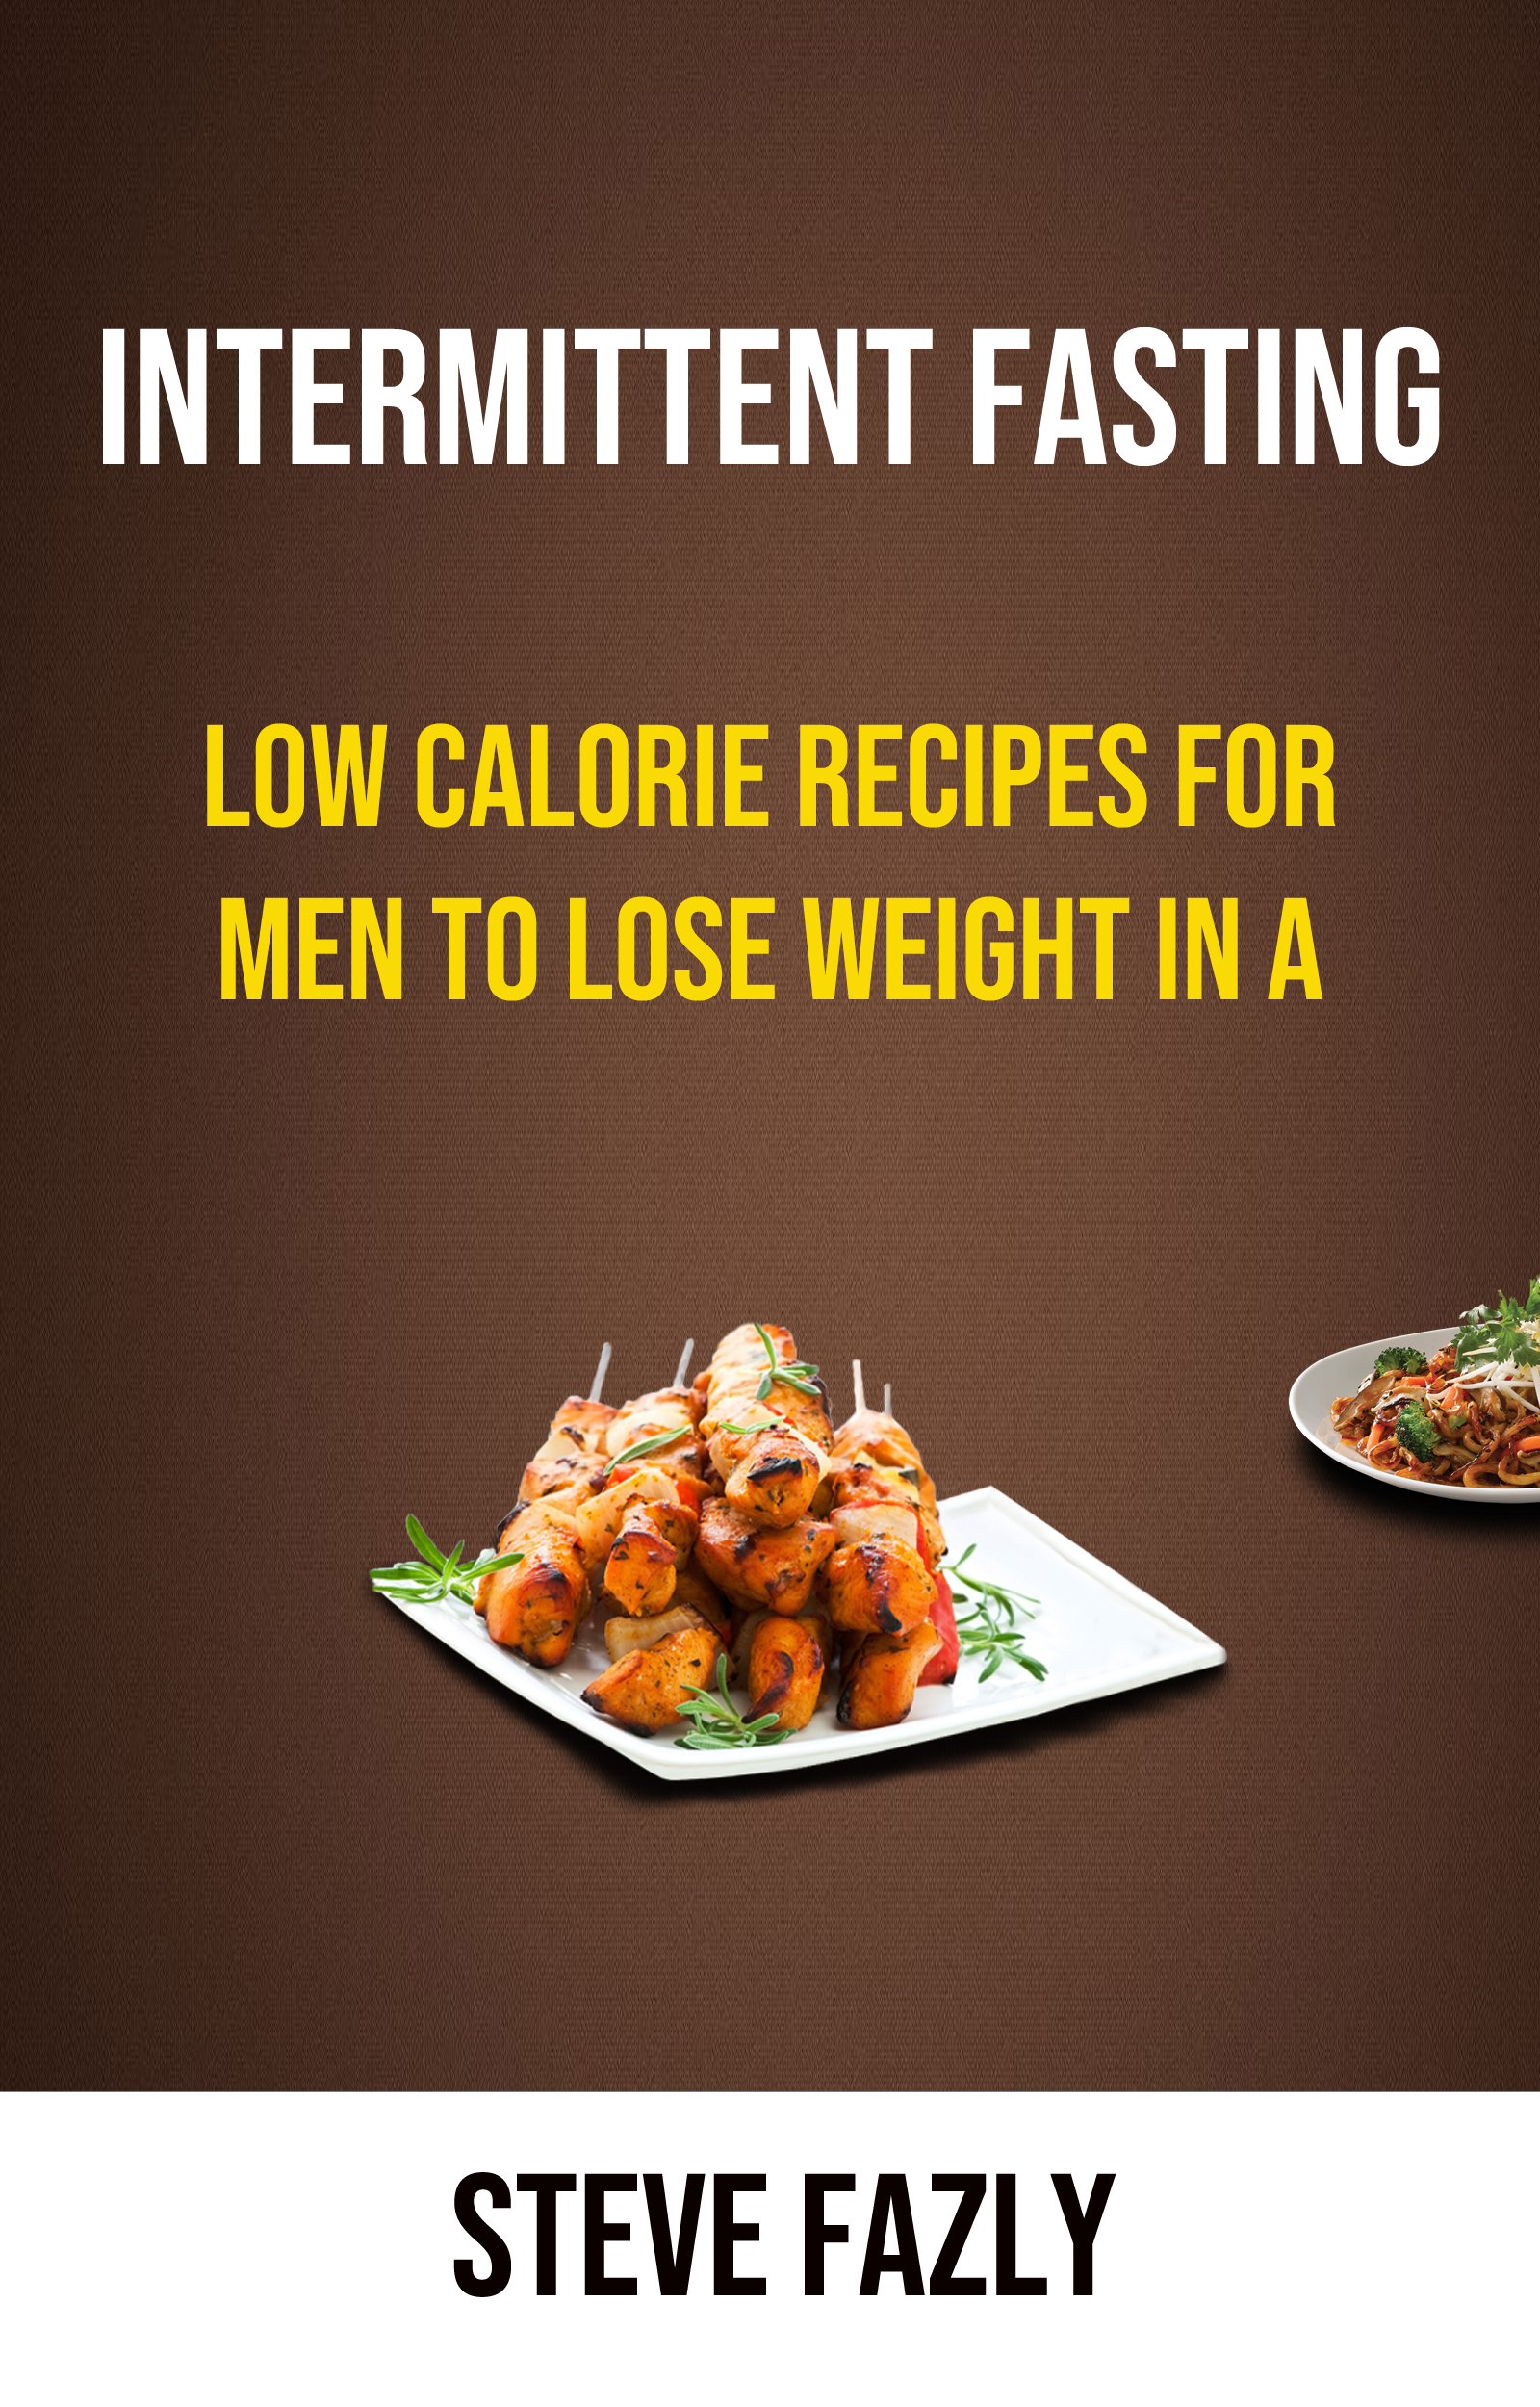 Intermittent fasting: low calorie recipes for men to lose weight in a